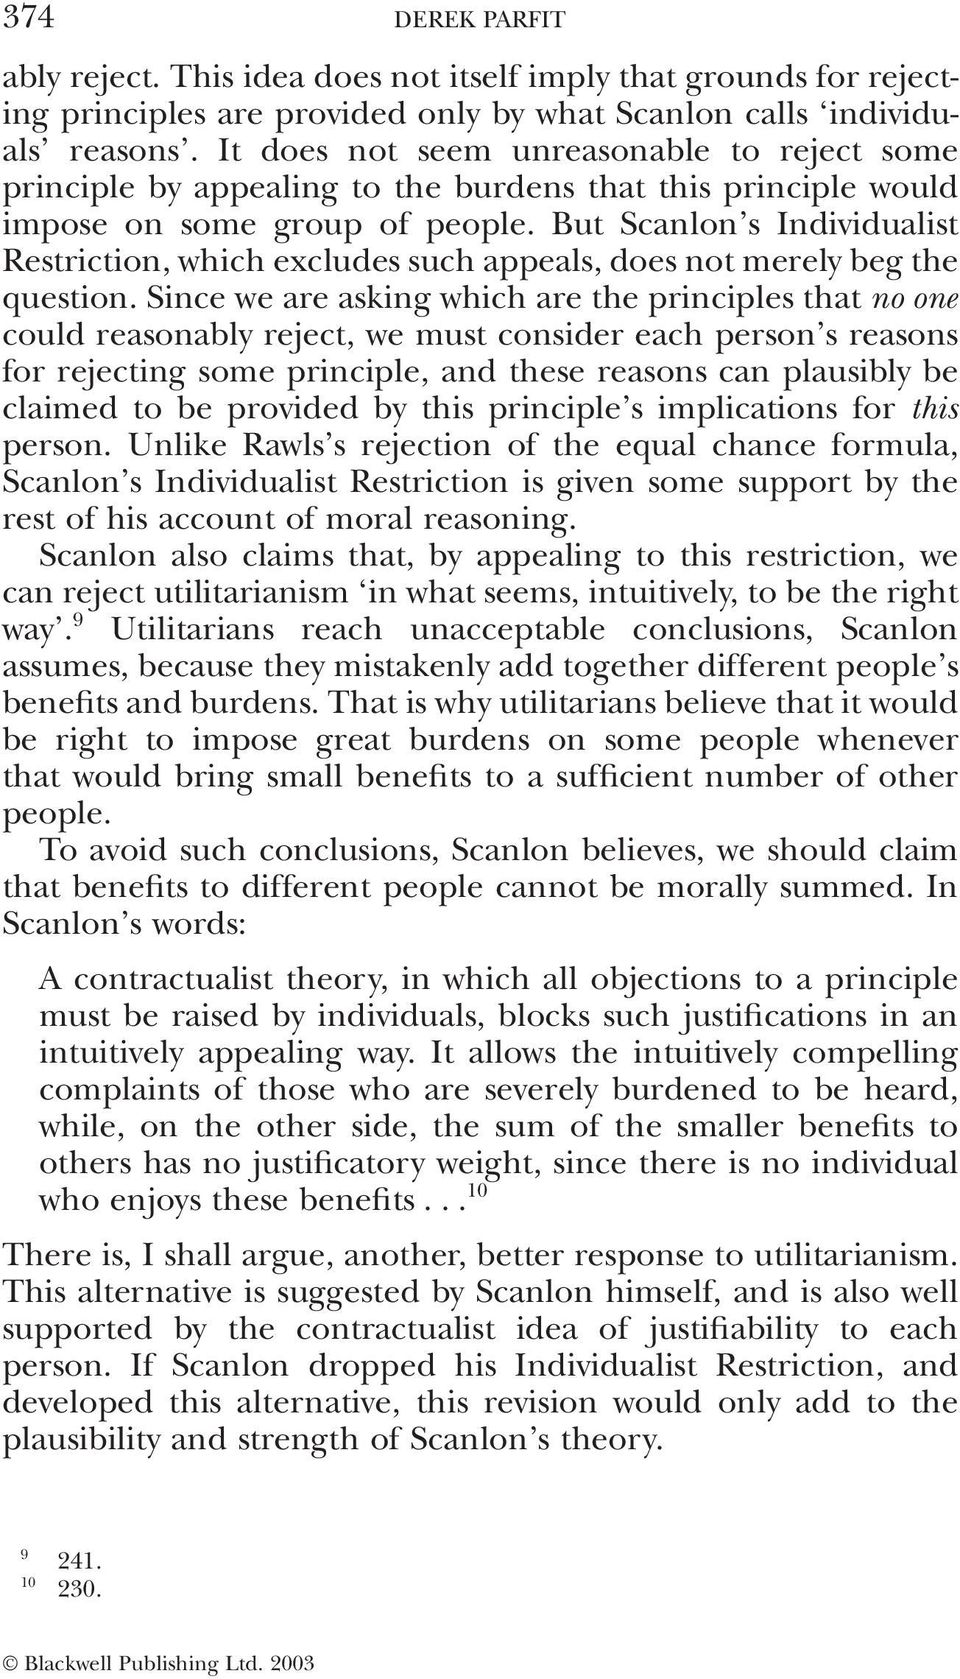 But Scanlon s Individualist Restriction, which excludes such appeals, does not merely beg the question.